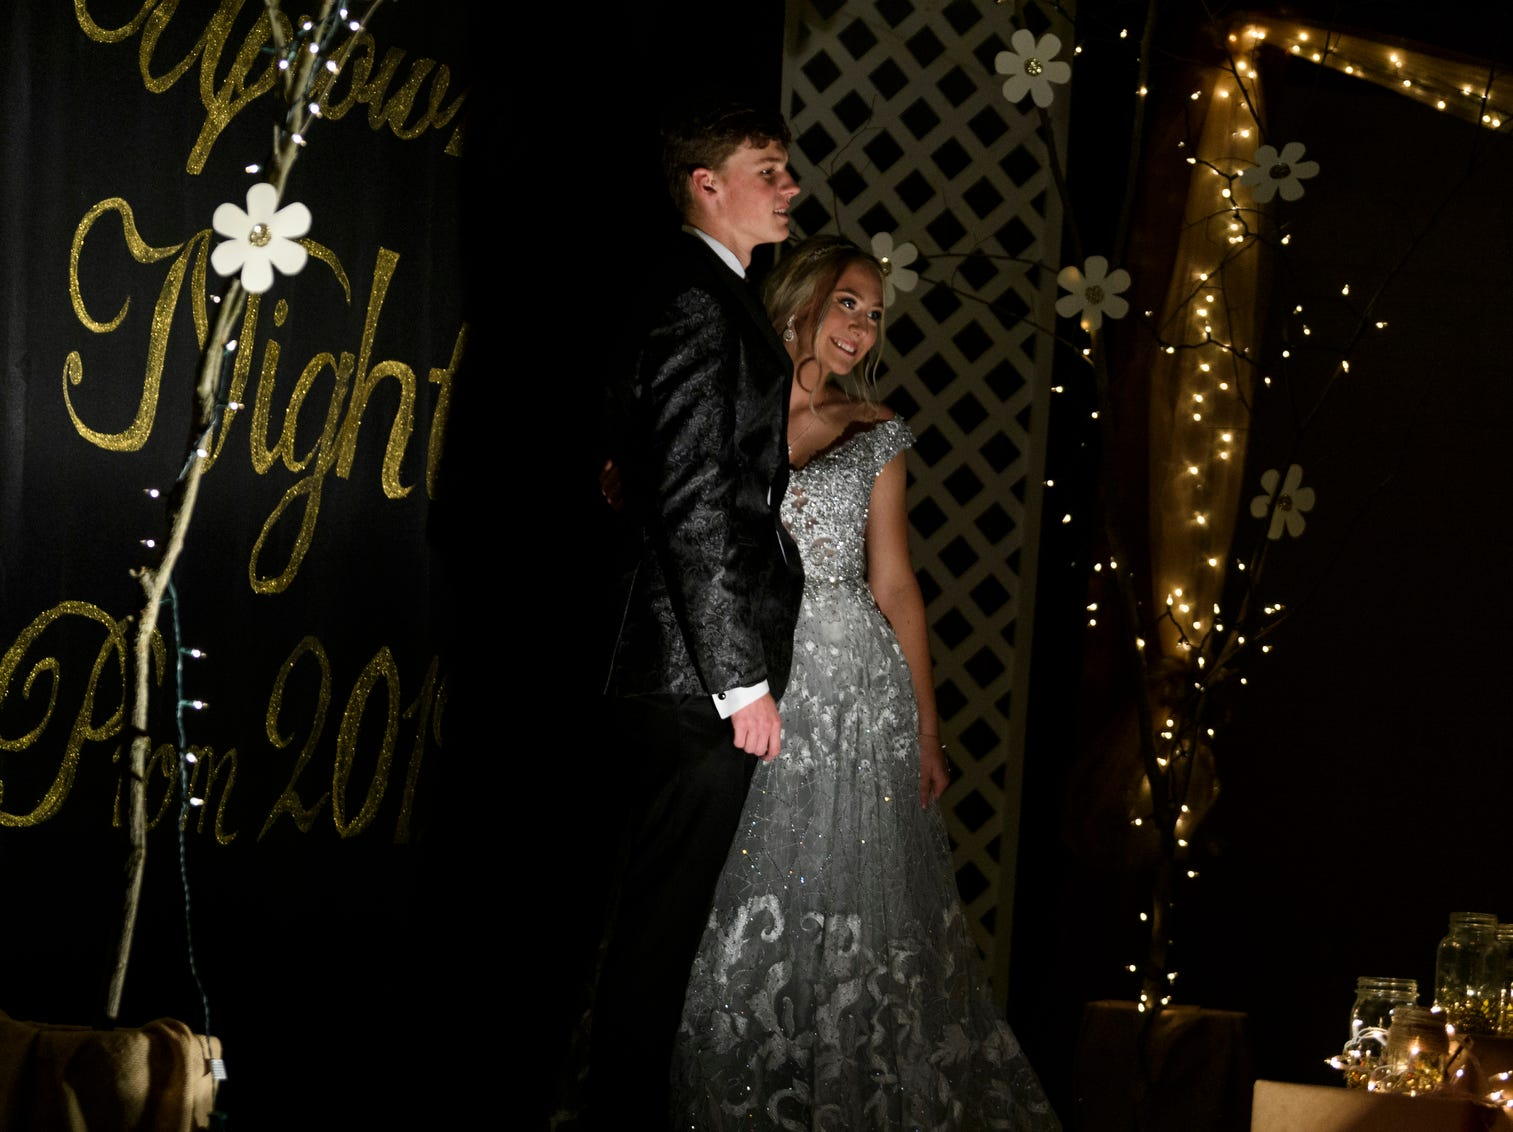 """Cooper Humphrey and Bailey Richie pose for a photo during Central High School's """"Uptown Night"""" themed prom held at the Vanderburgh 4-H Center auditorium in Evansville, Ind., Saturday, April 27, 2019."""